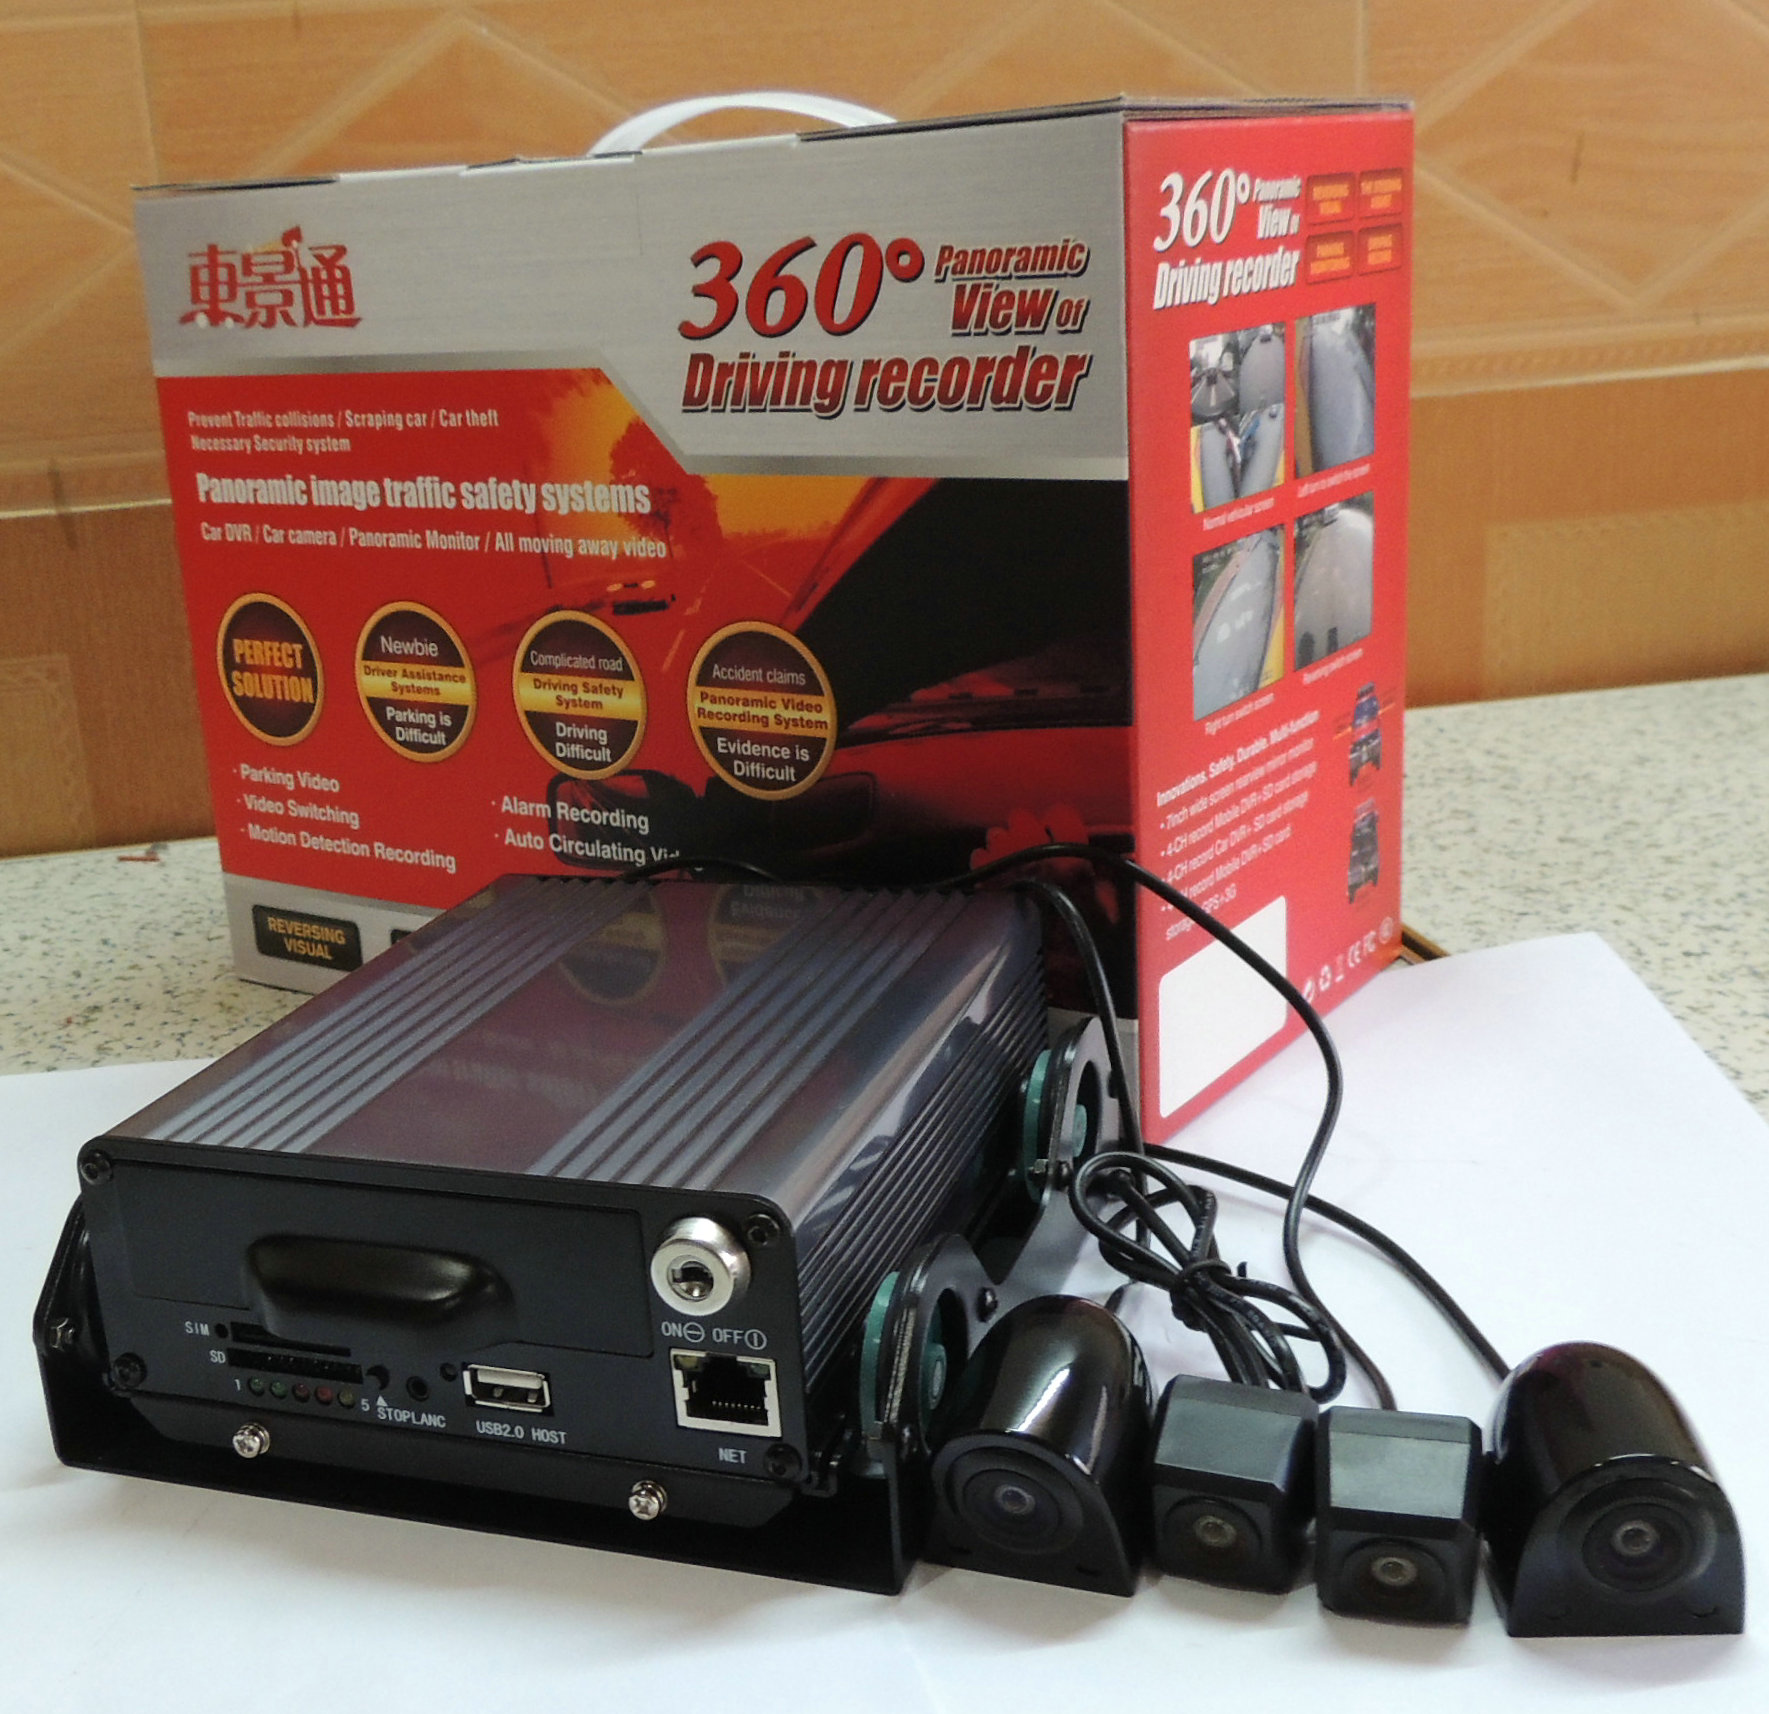 MC9910 Shock-proof Vehicle Video Recorder